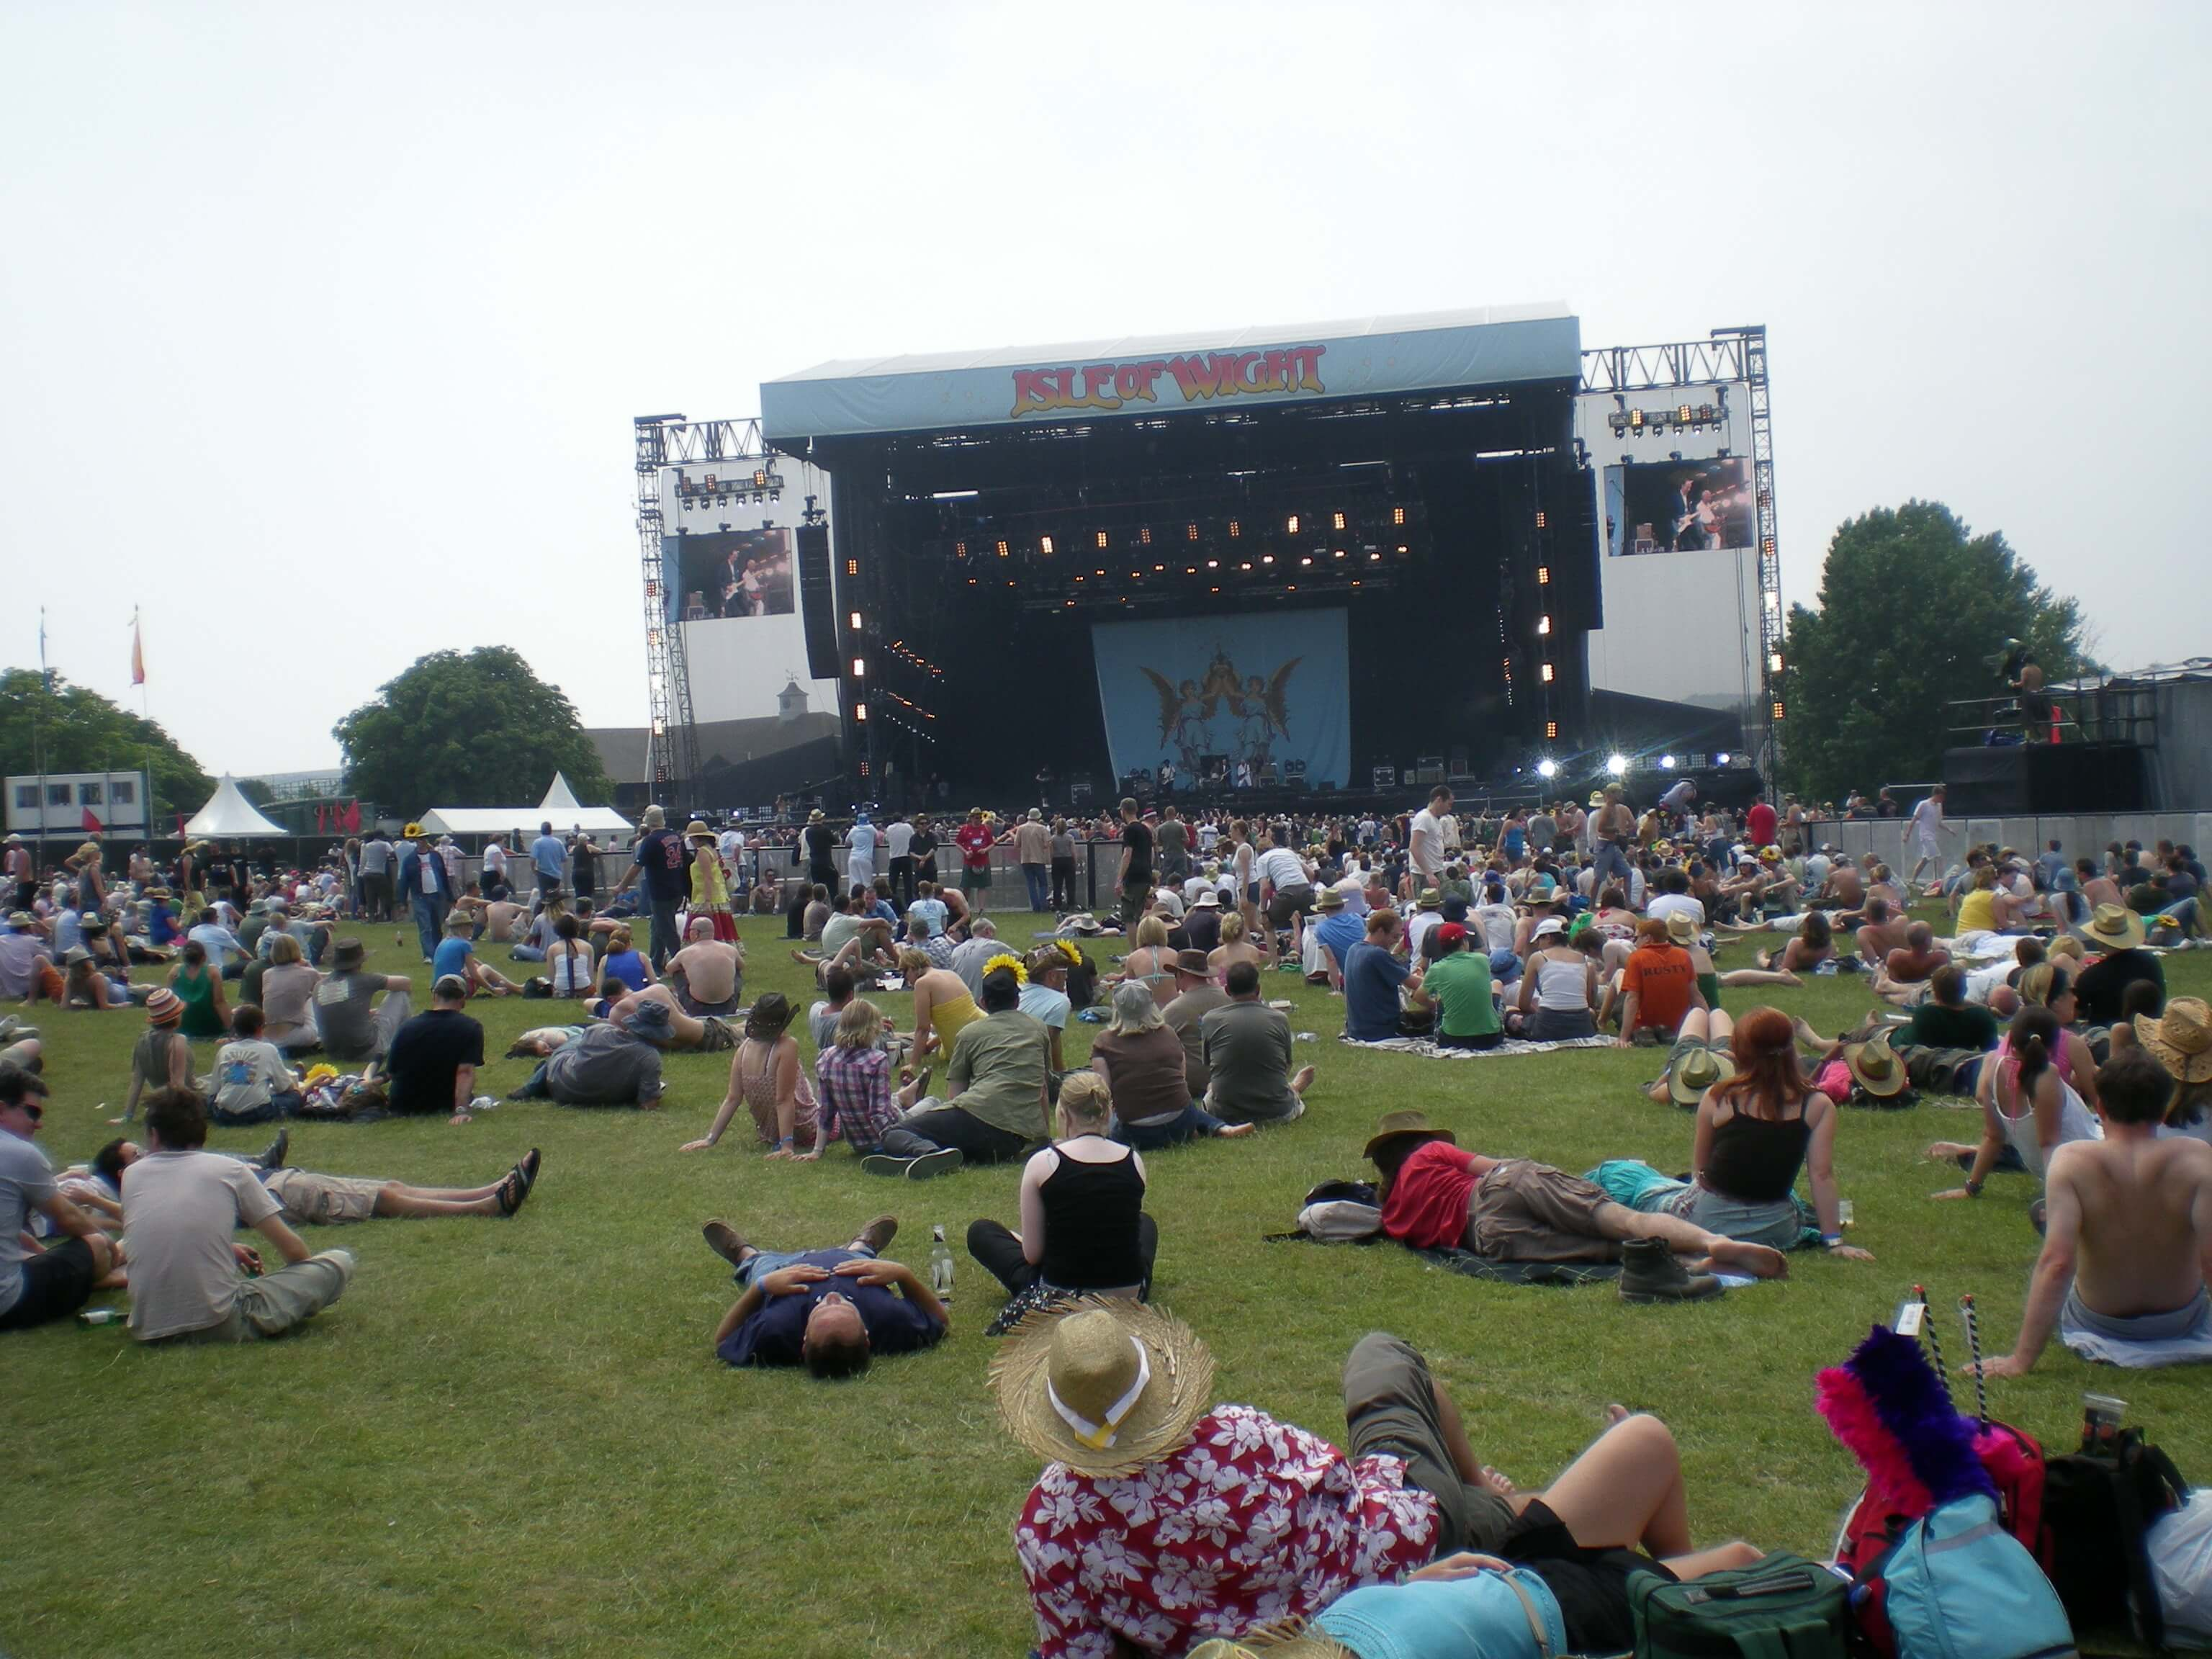 Photograph of the Isle of Wight Festival